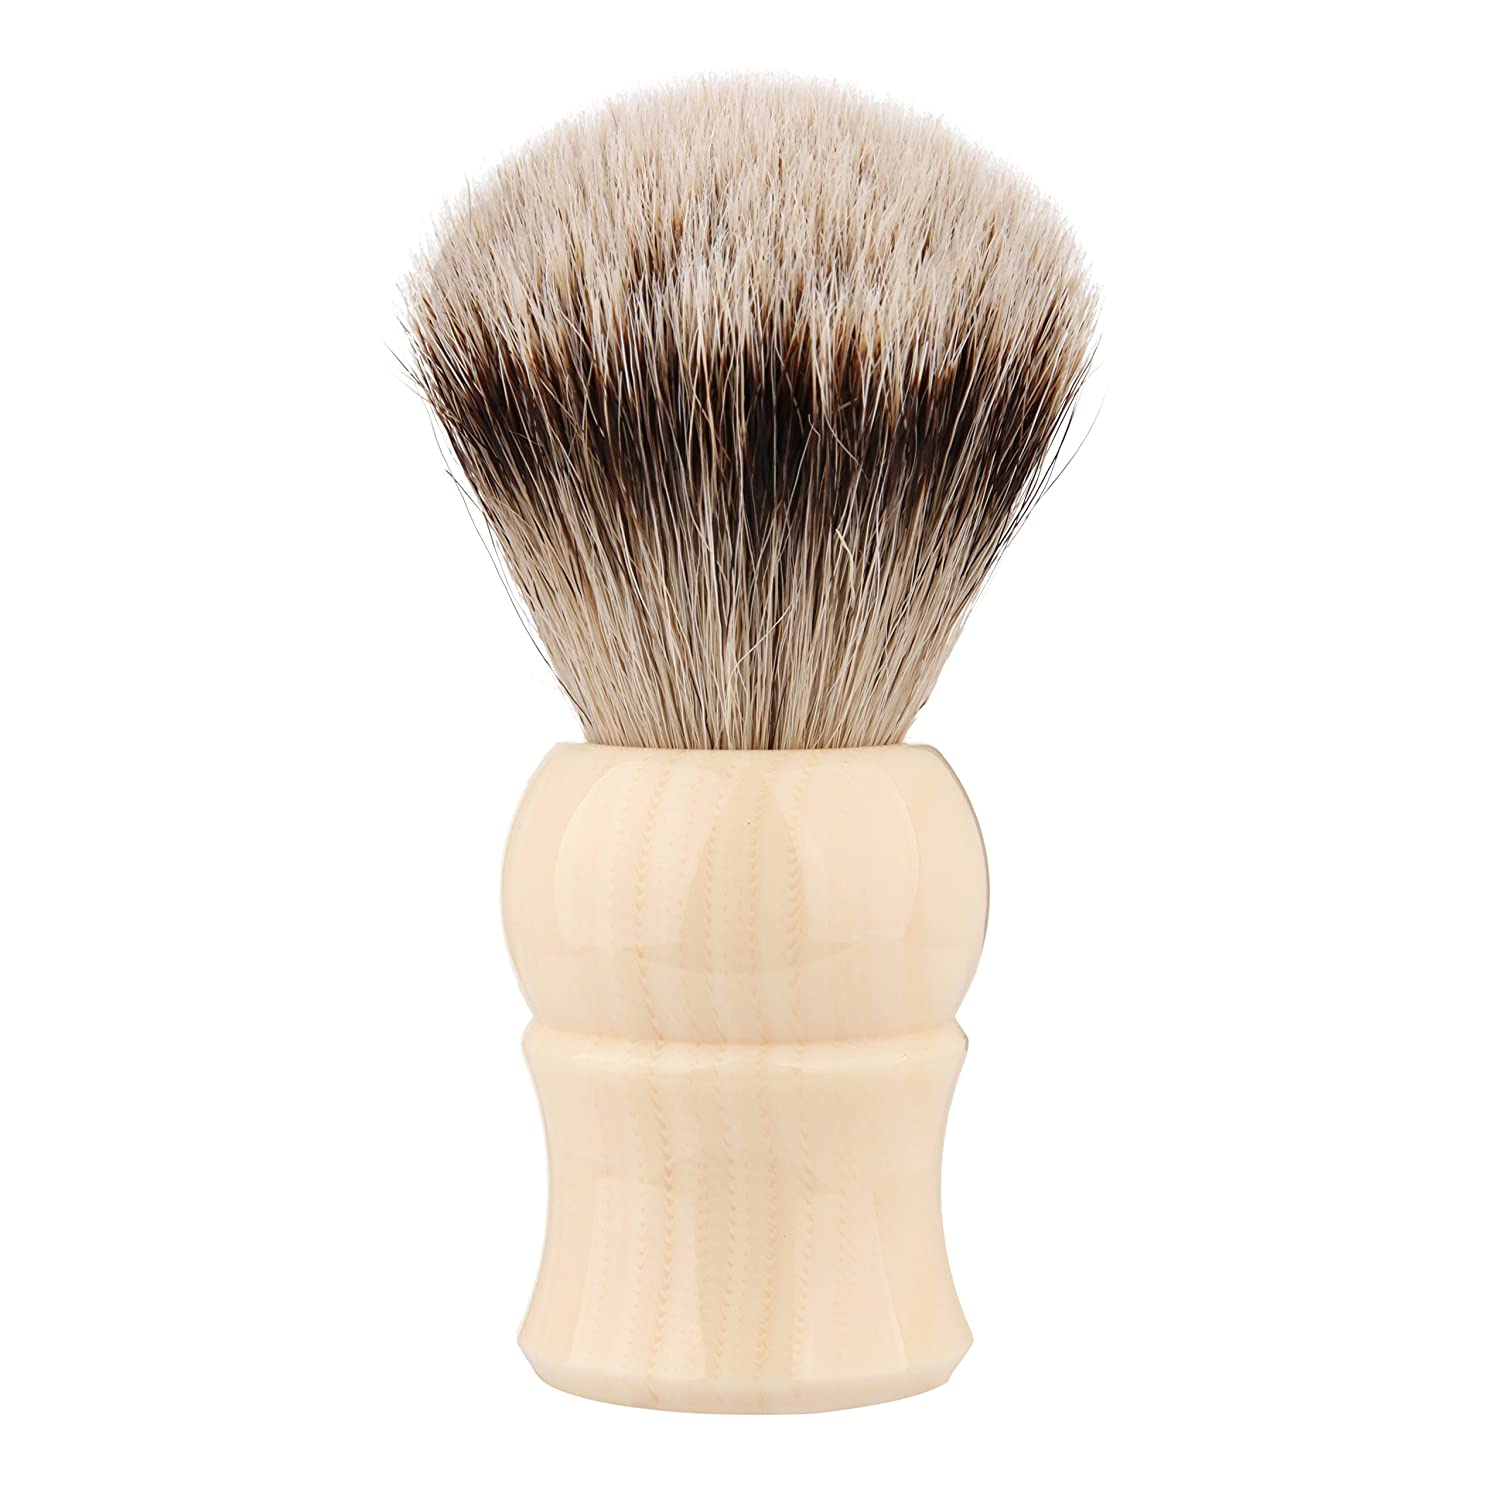 CYH Silvertip Badger Shaving brush, 100% Top Quality Silvertip Badger Hair with Imported Resin Handle Luxury Facial Care Tools for Safety Razor, Double Edge Razor, Shaving Razor